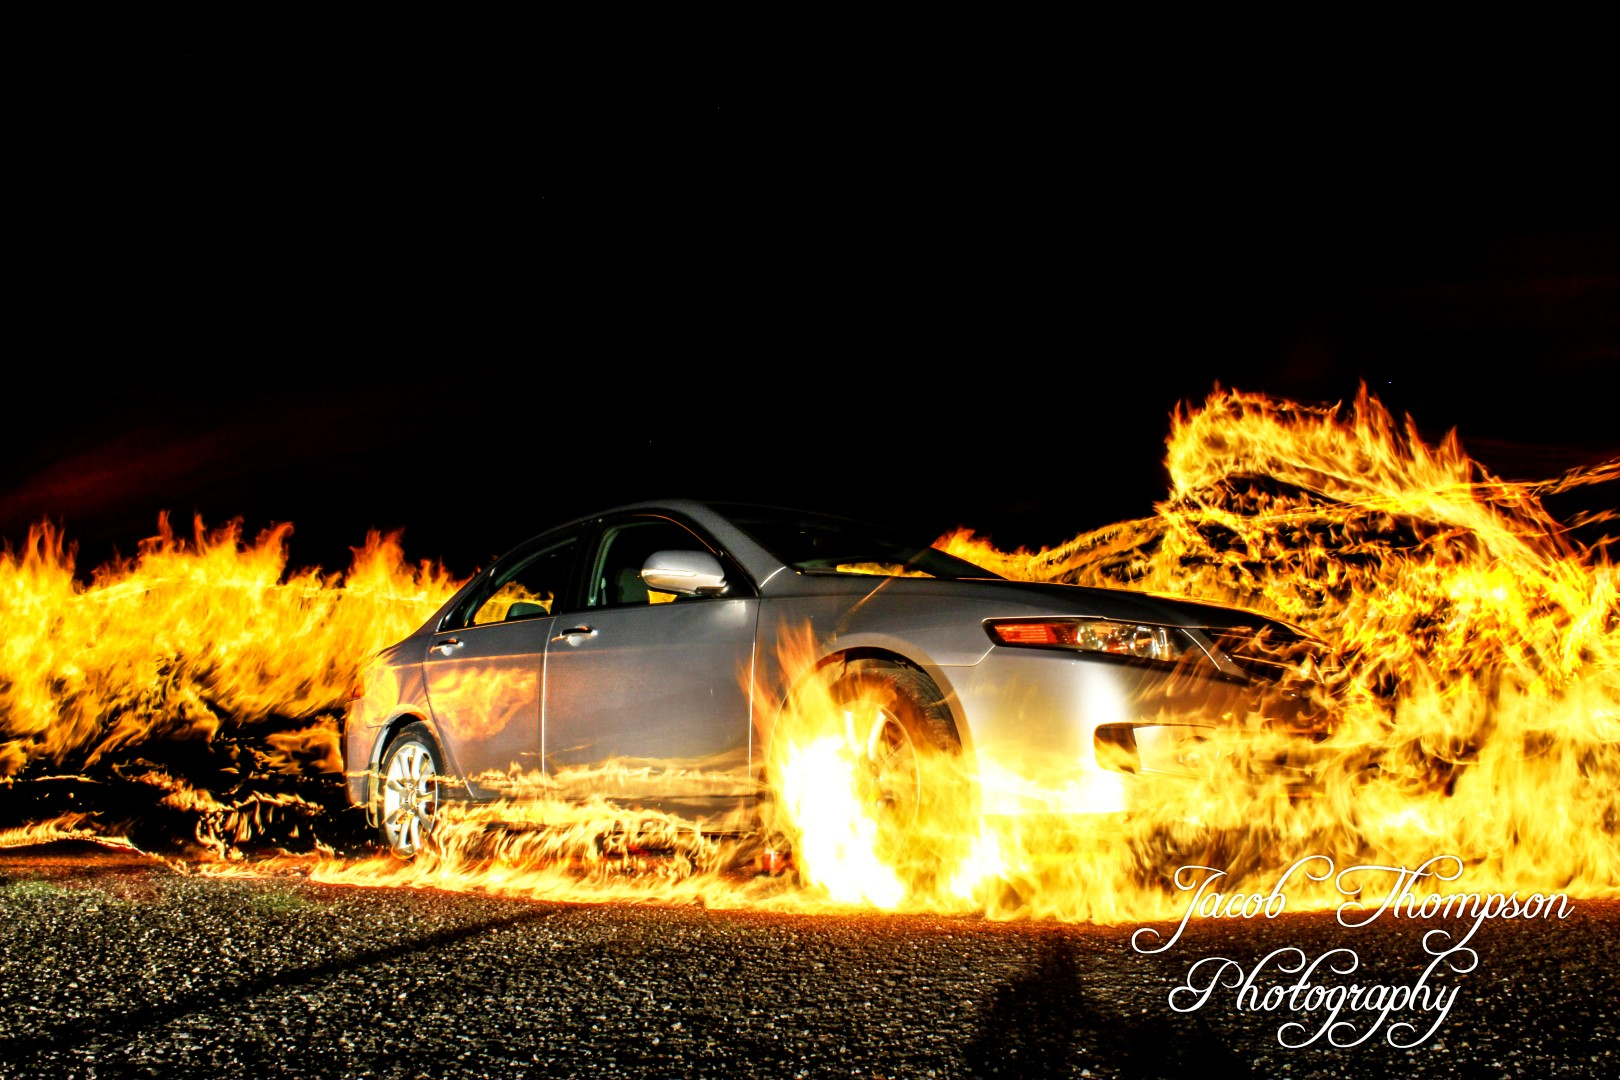 Car fire flames long exposure